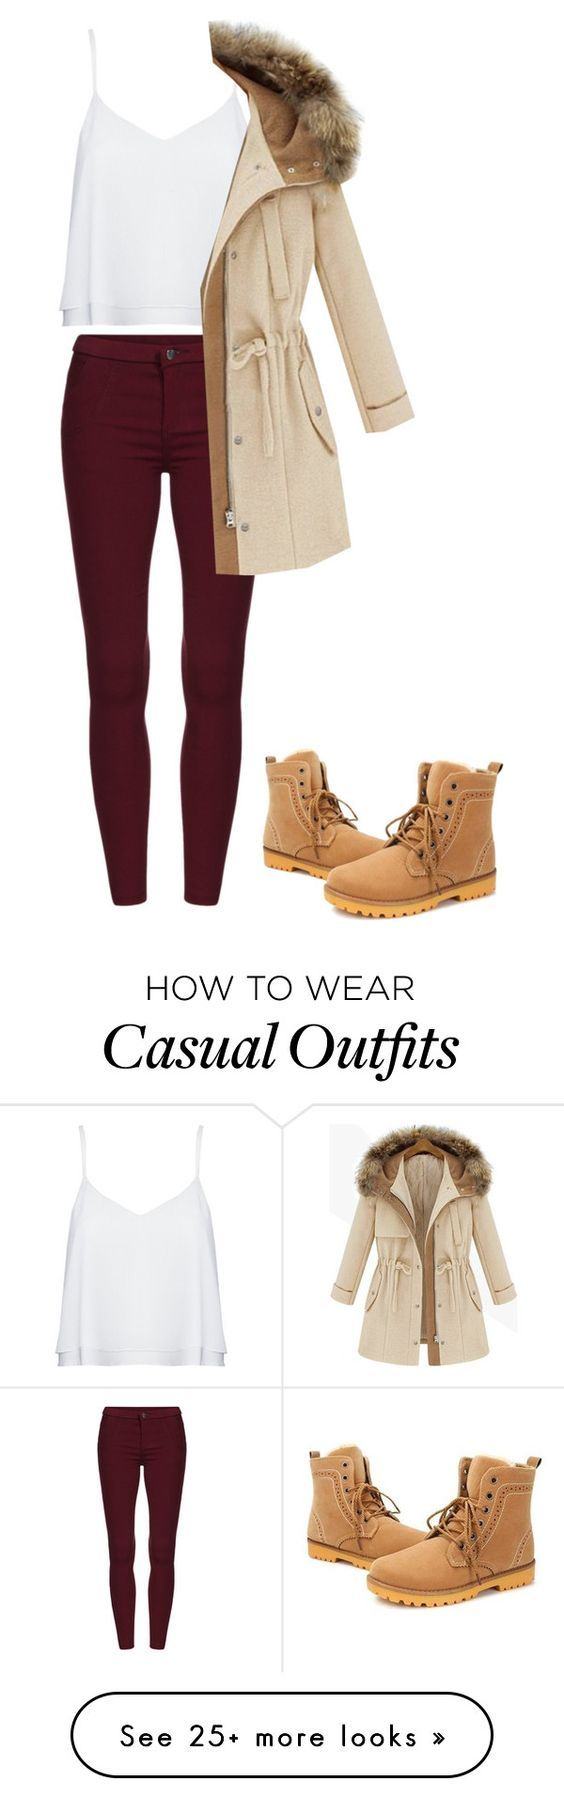 """Casual Autumn"" by bronaaa on Polyvore featuring Alice + Olivia"